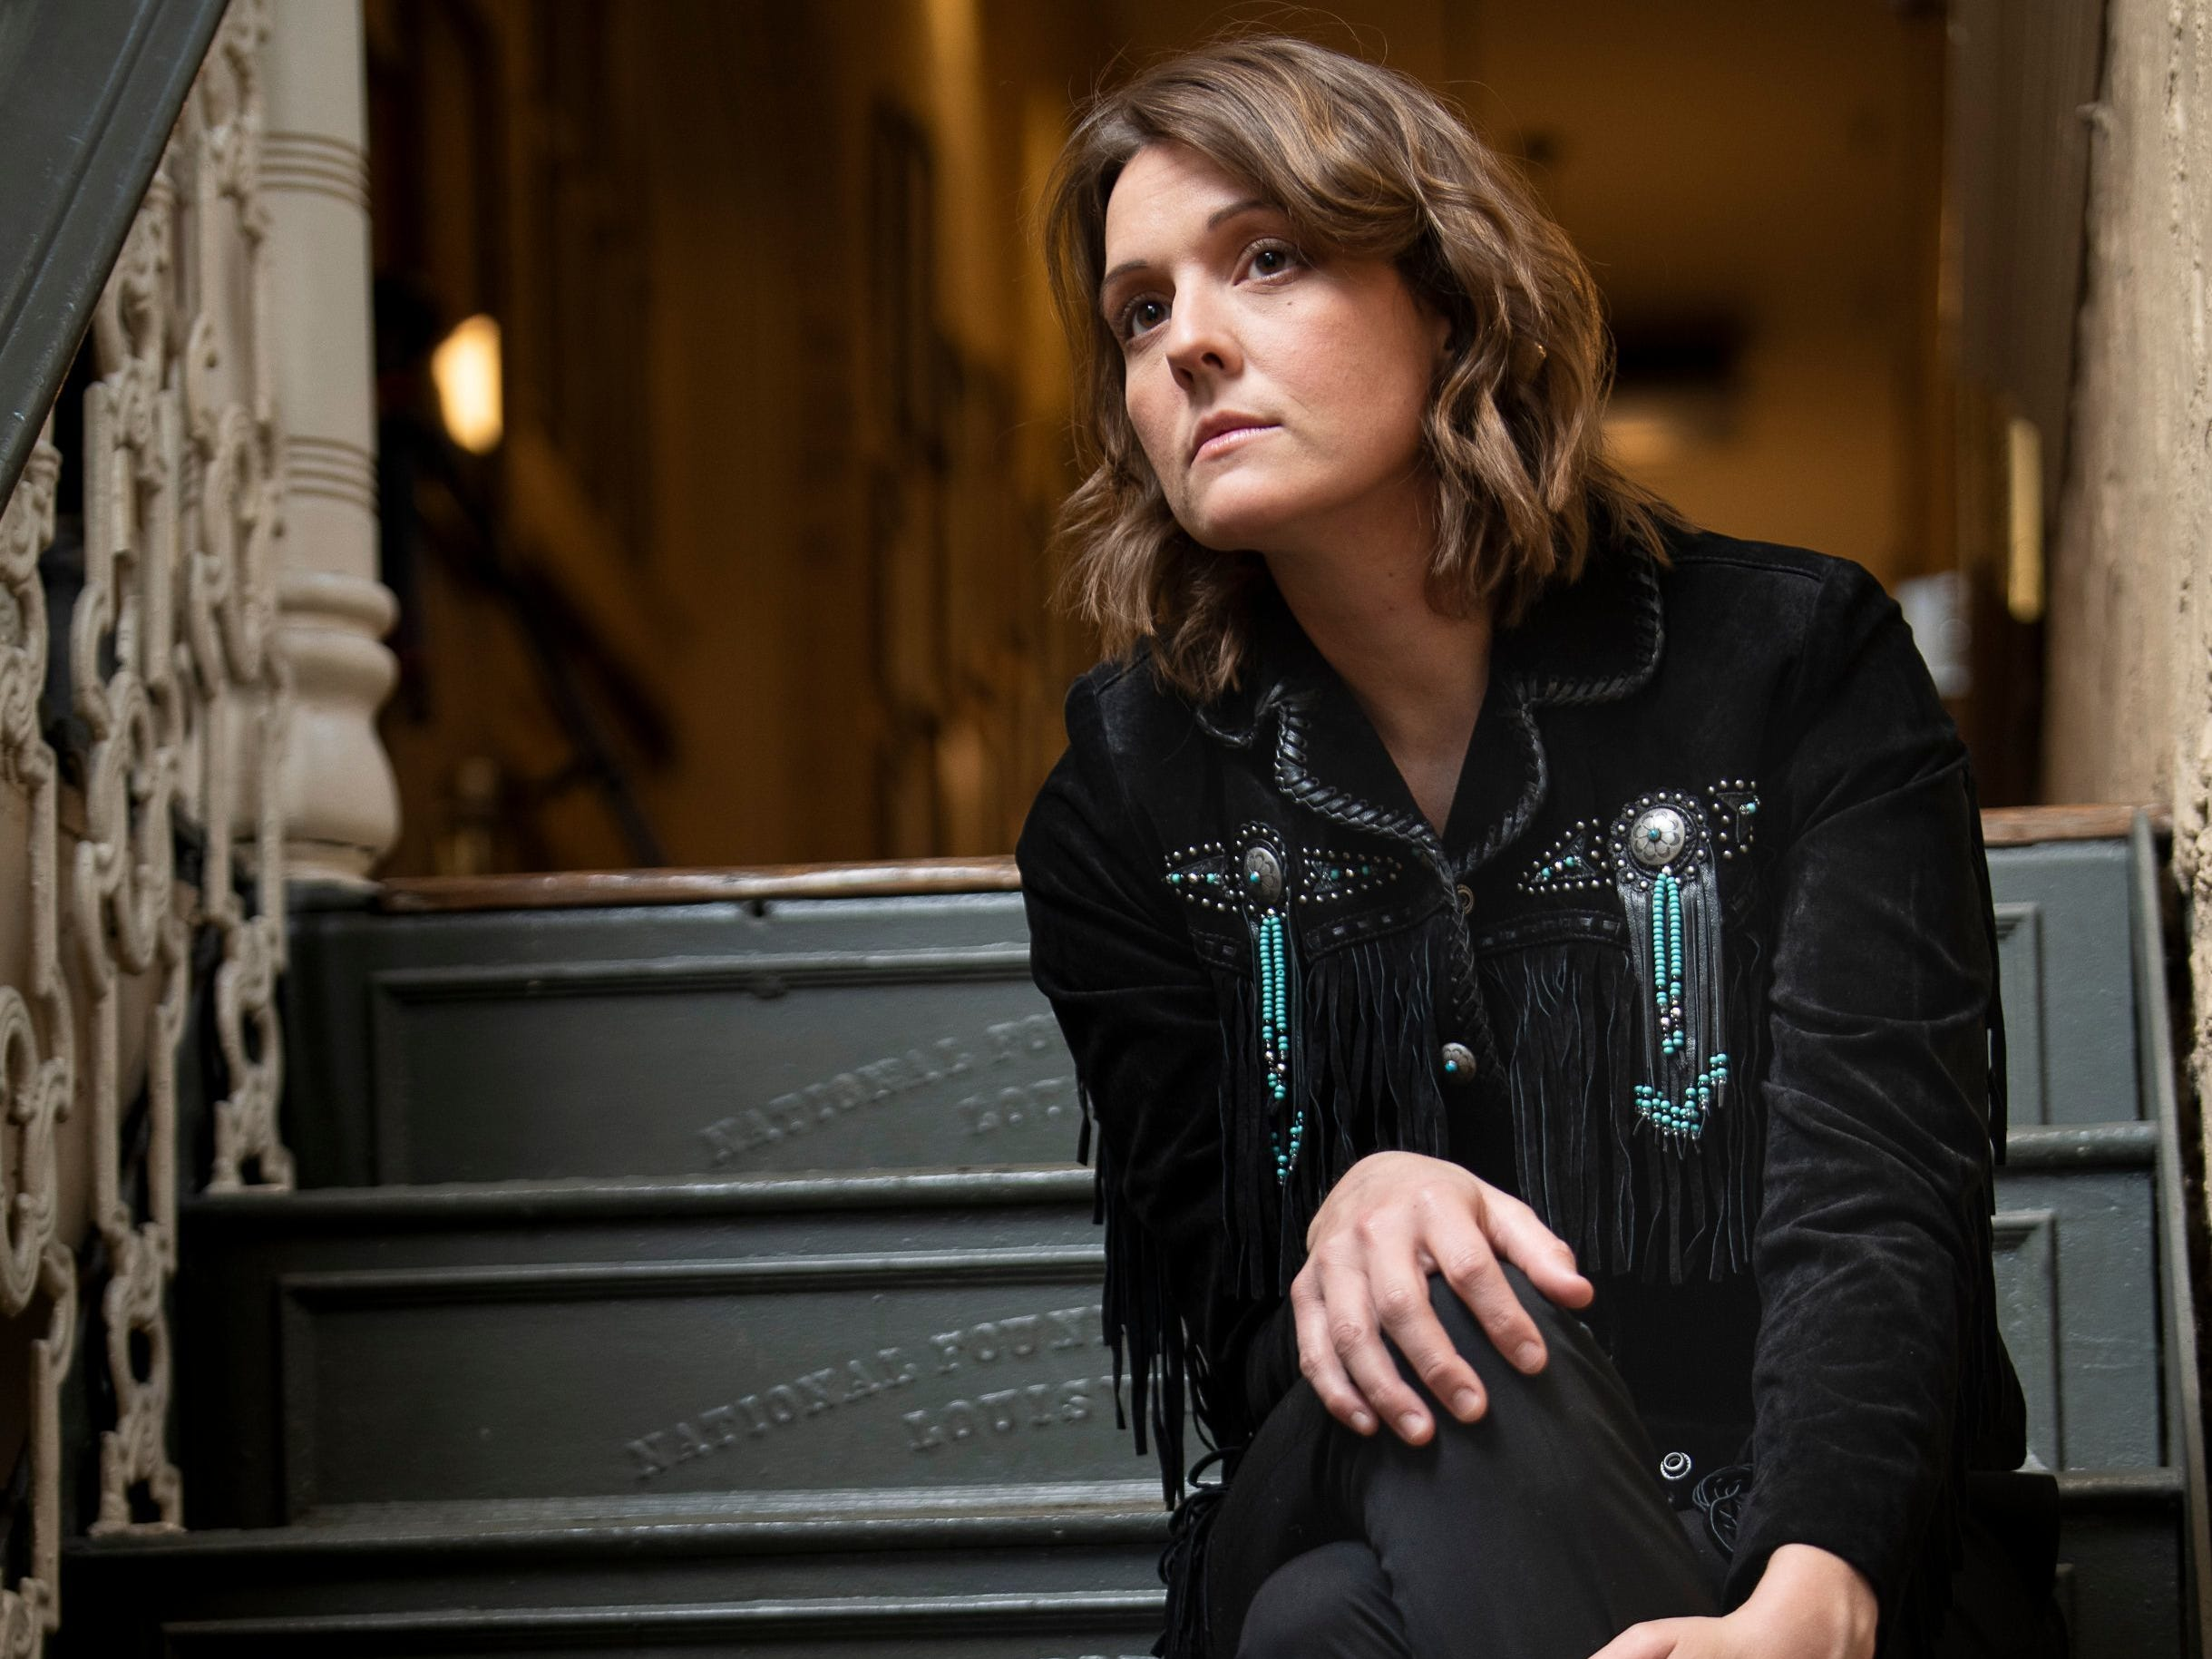 Brandi Carlile is a nominee for 2019 CMT Music Awards' Female Video of the Year.